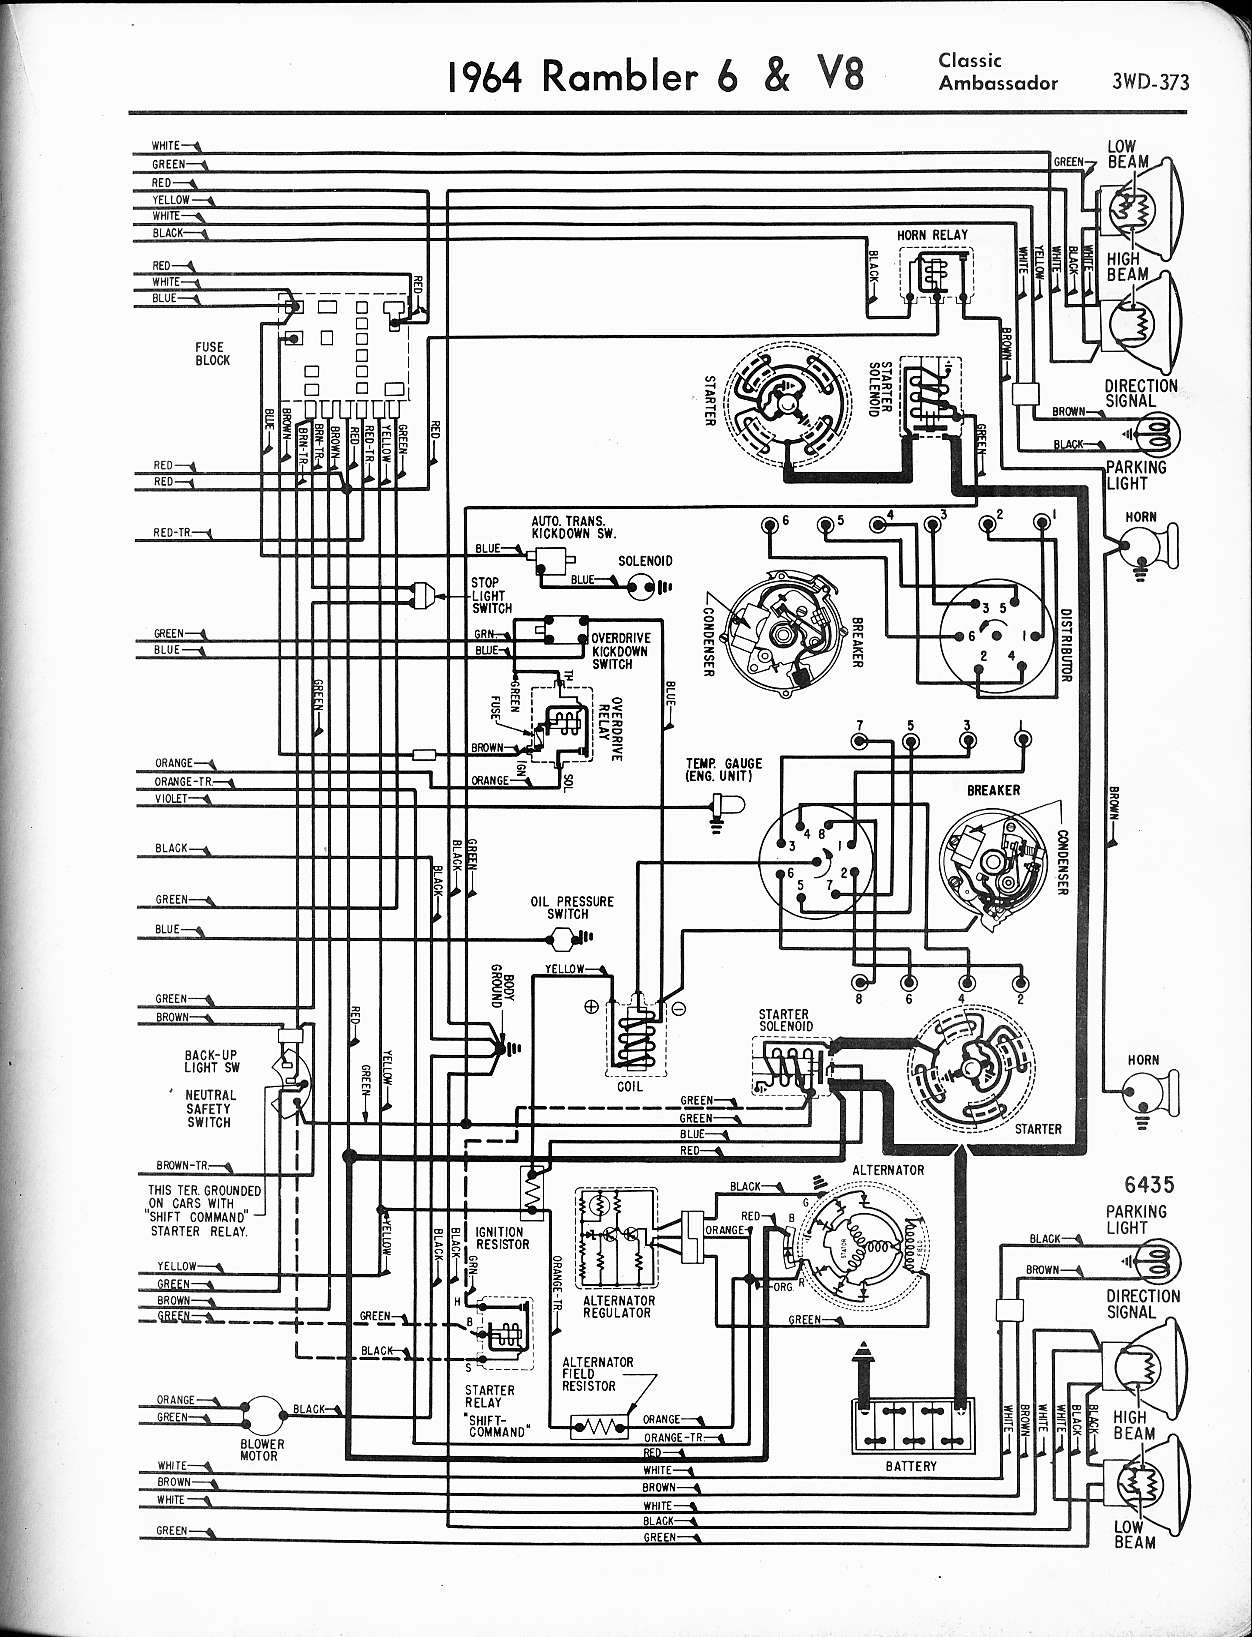 1965 Rambler Marlin Wiring Diagram : 34 Wiring Diagram